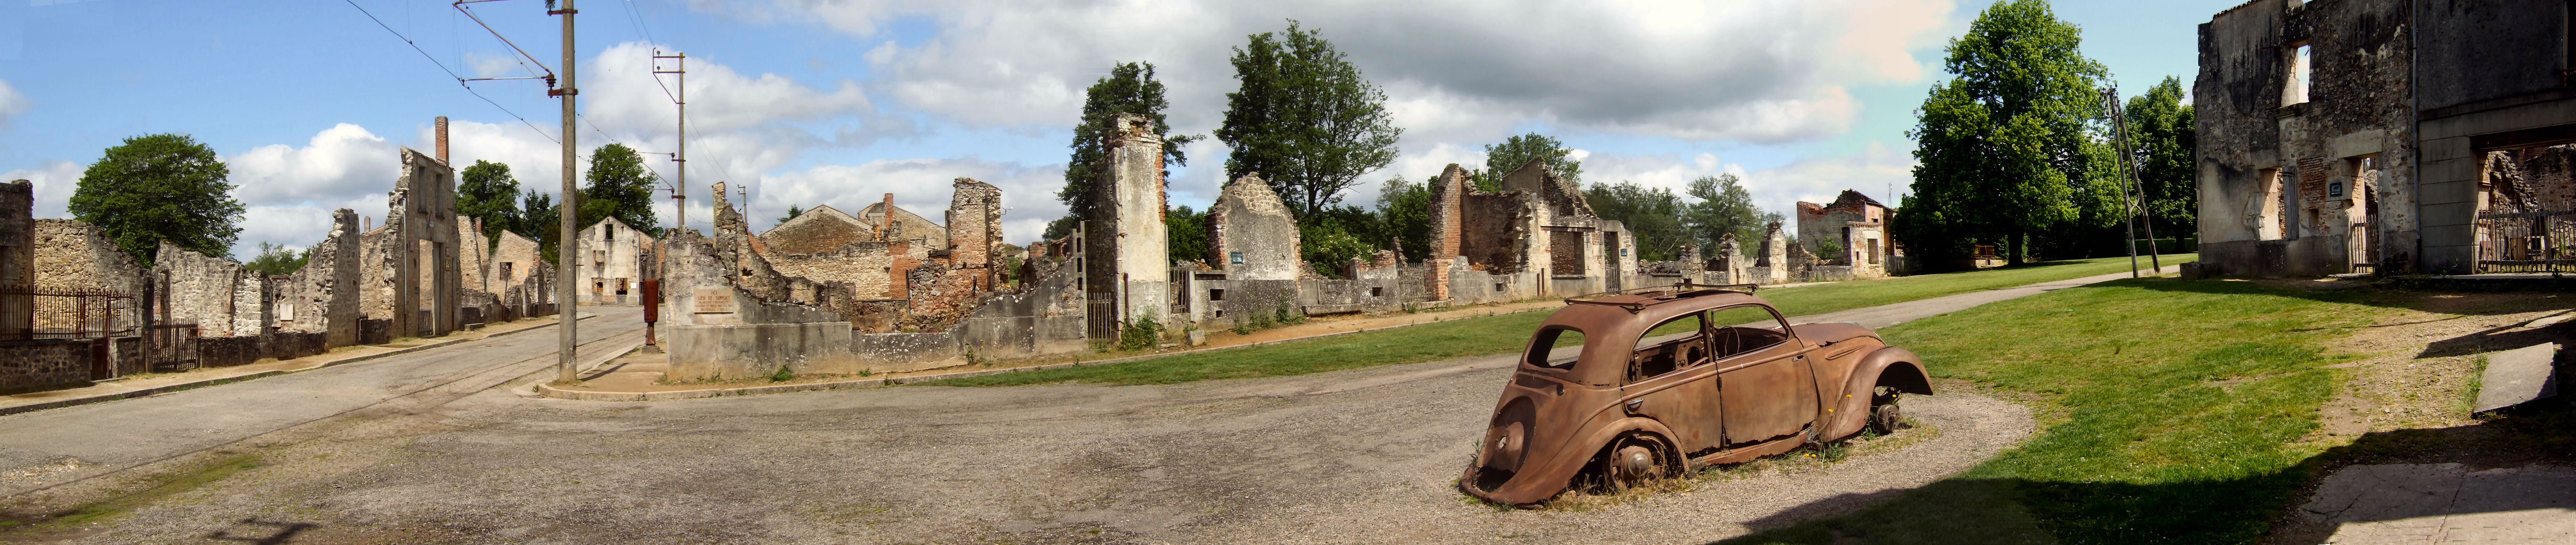 The Champ de Foire and the doctor's car at Oradour-sur-Glane looking north.